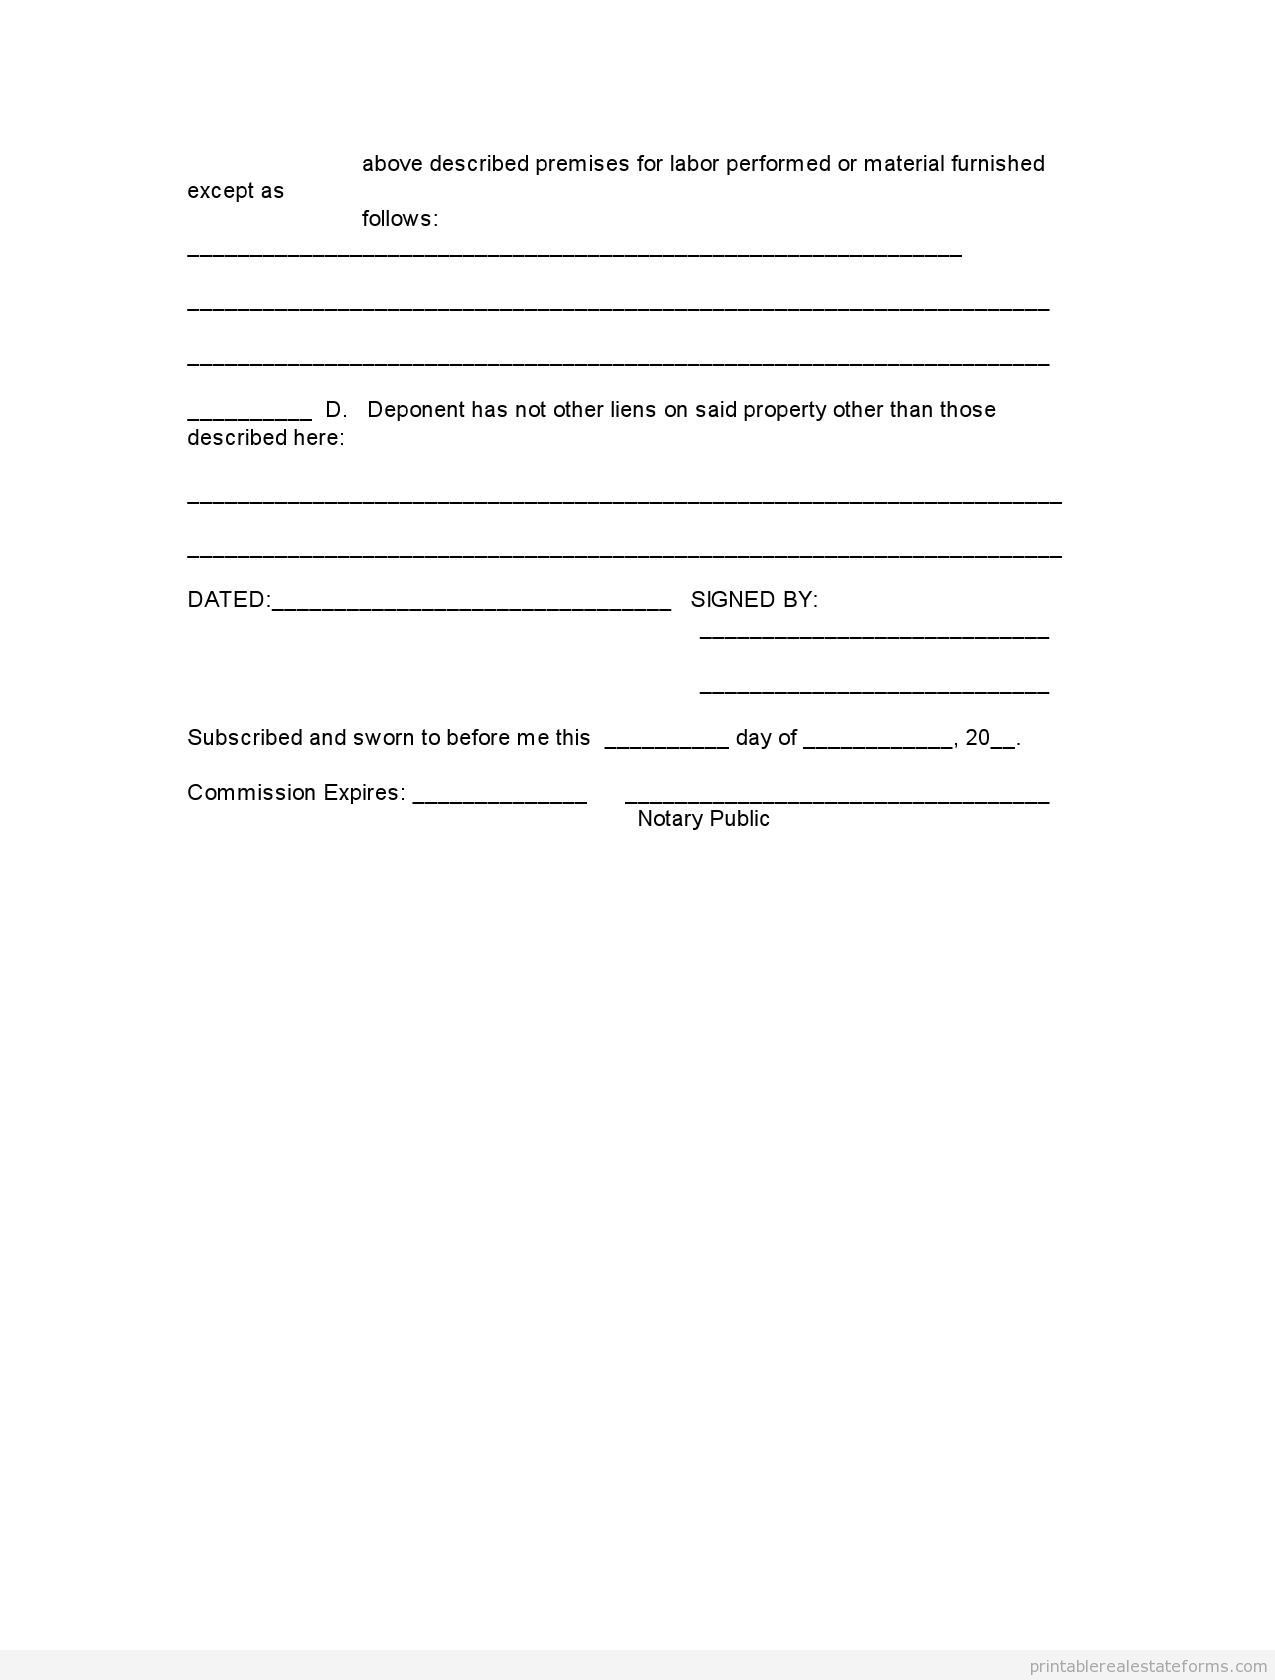 Sample Printable Affidavit Of Ownership  Form  Printable Real